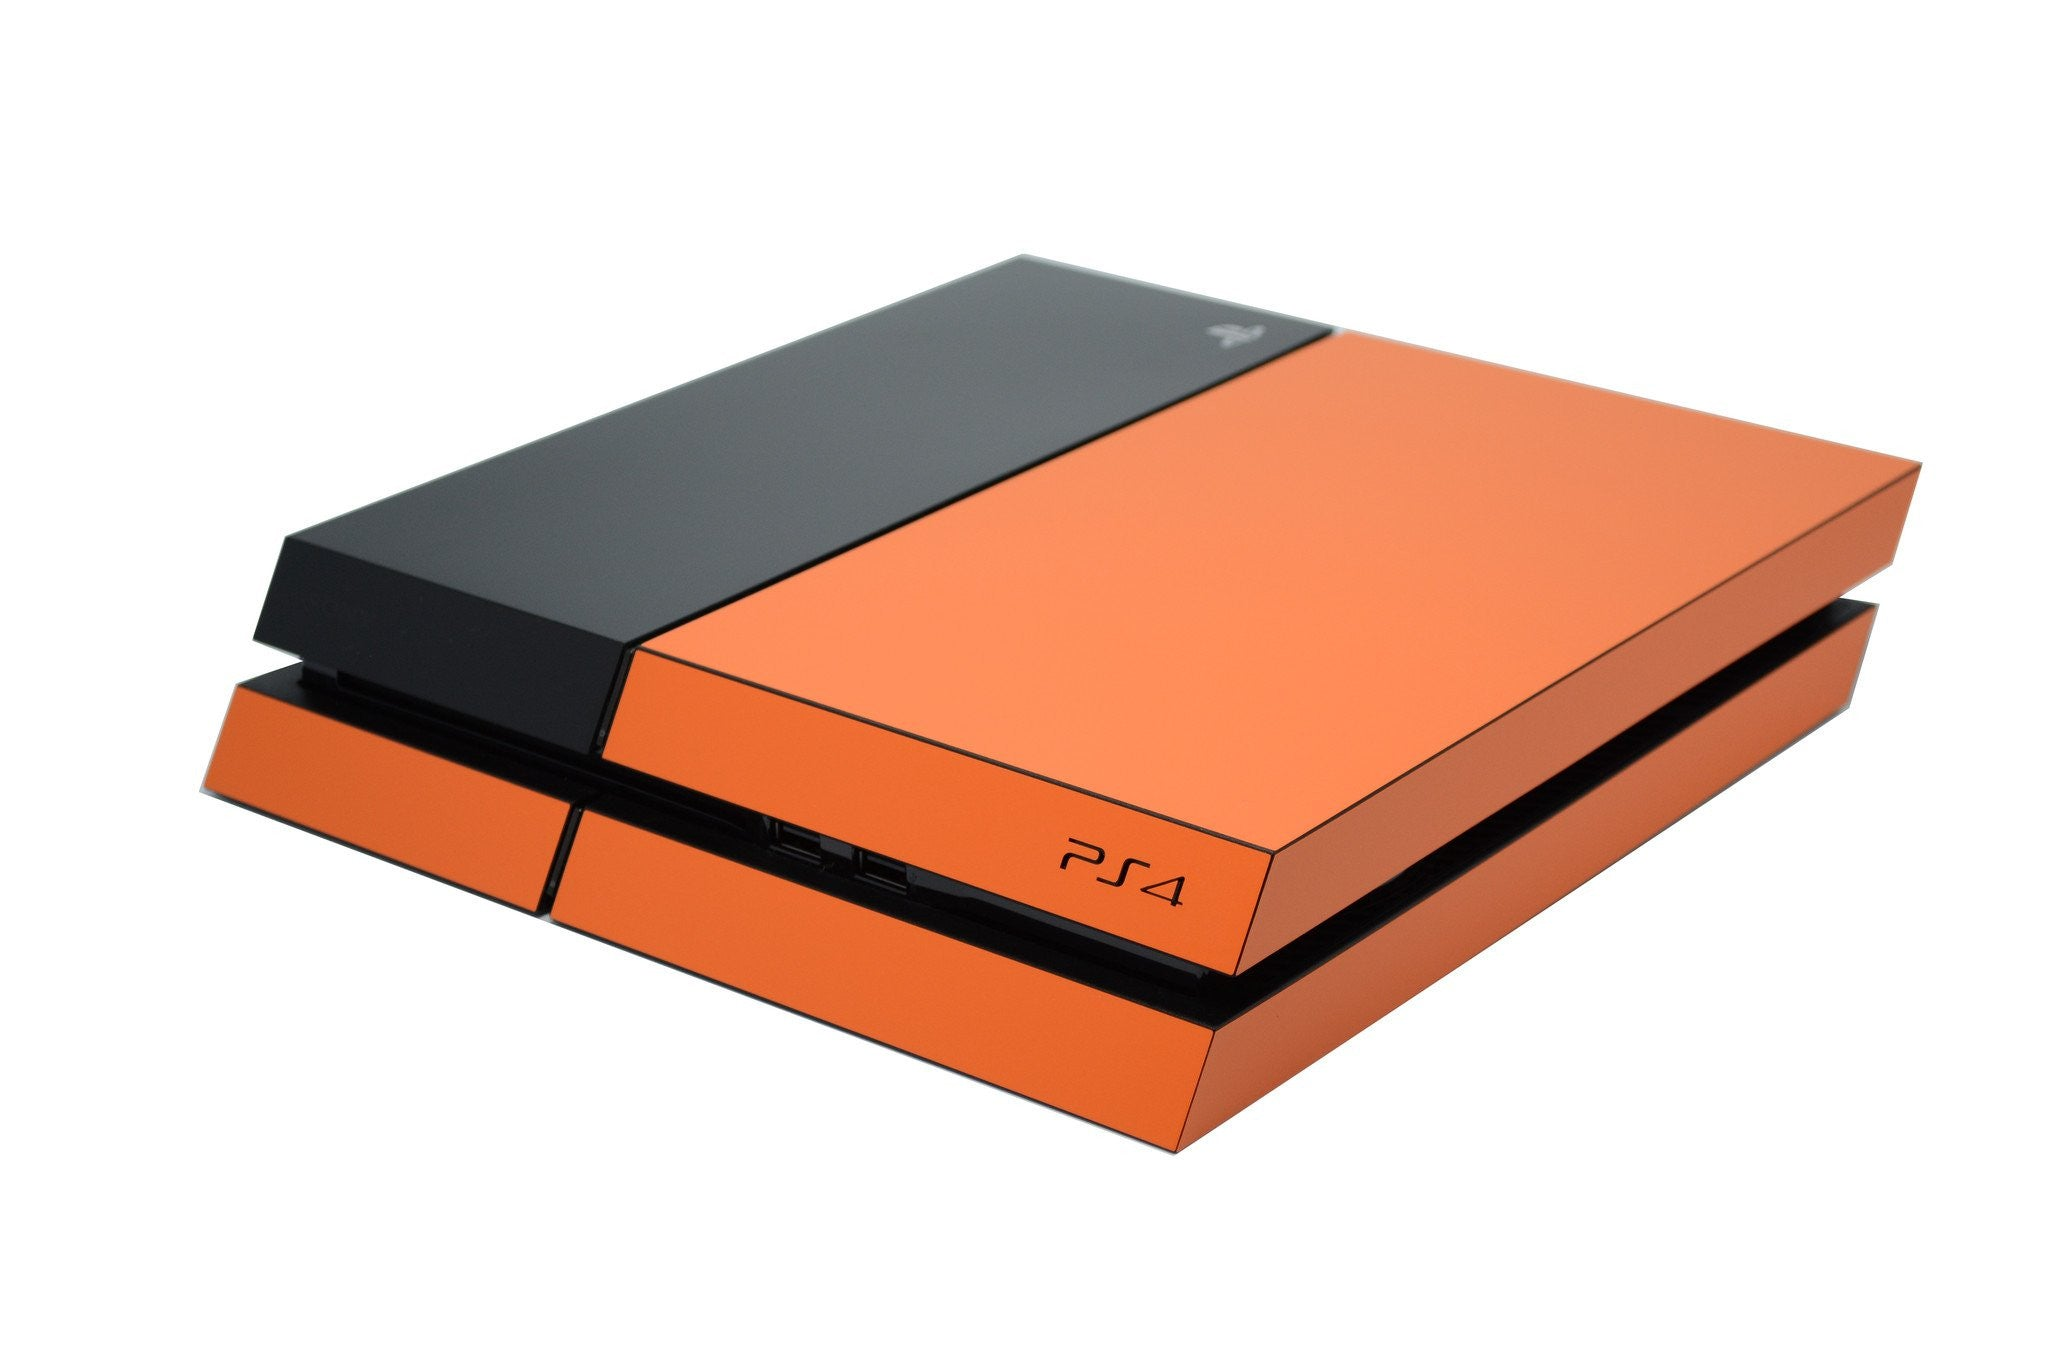 ps4 orange matt part body skin